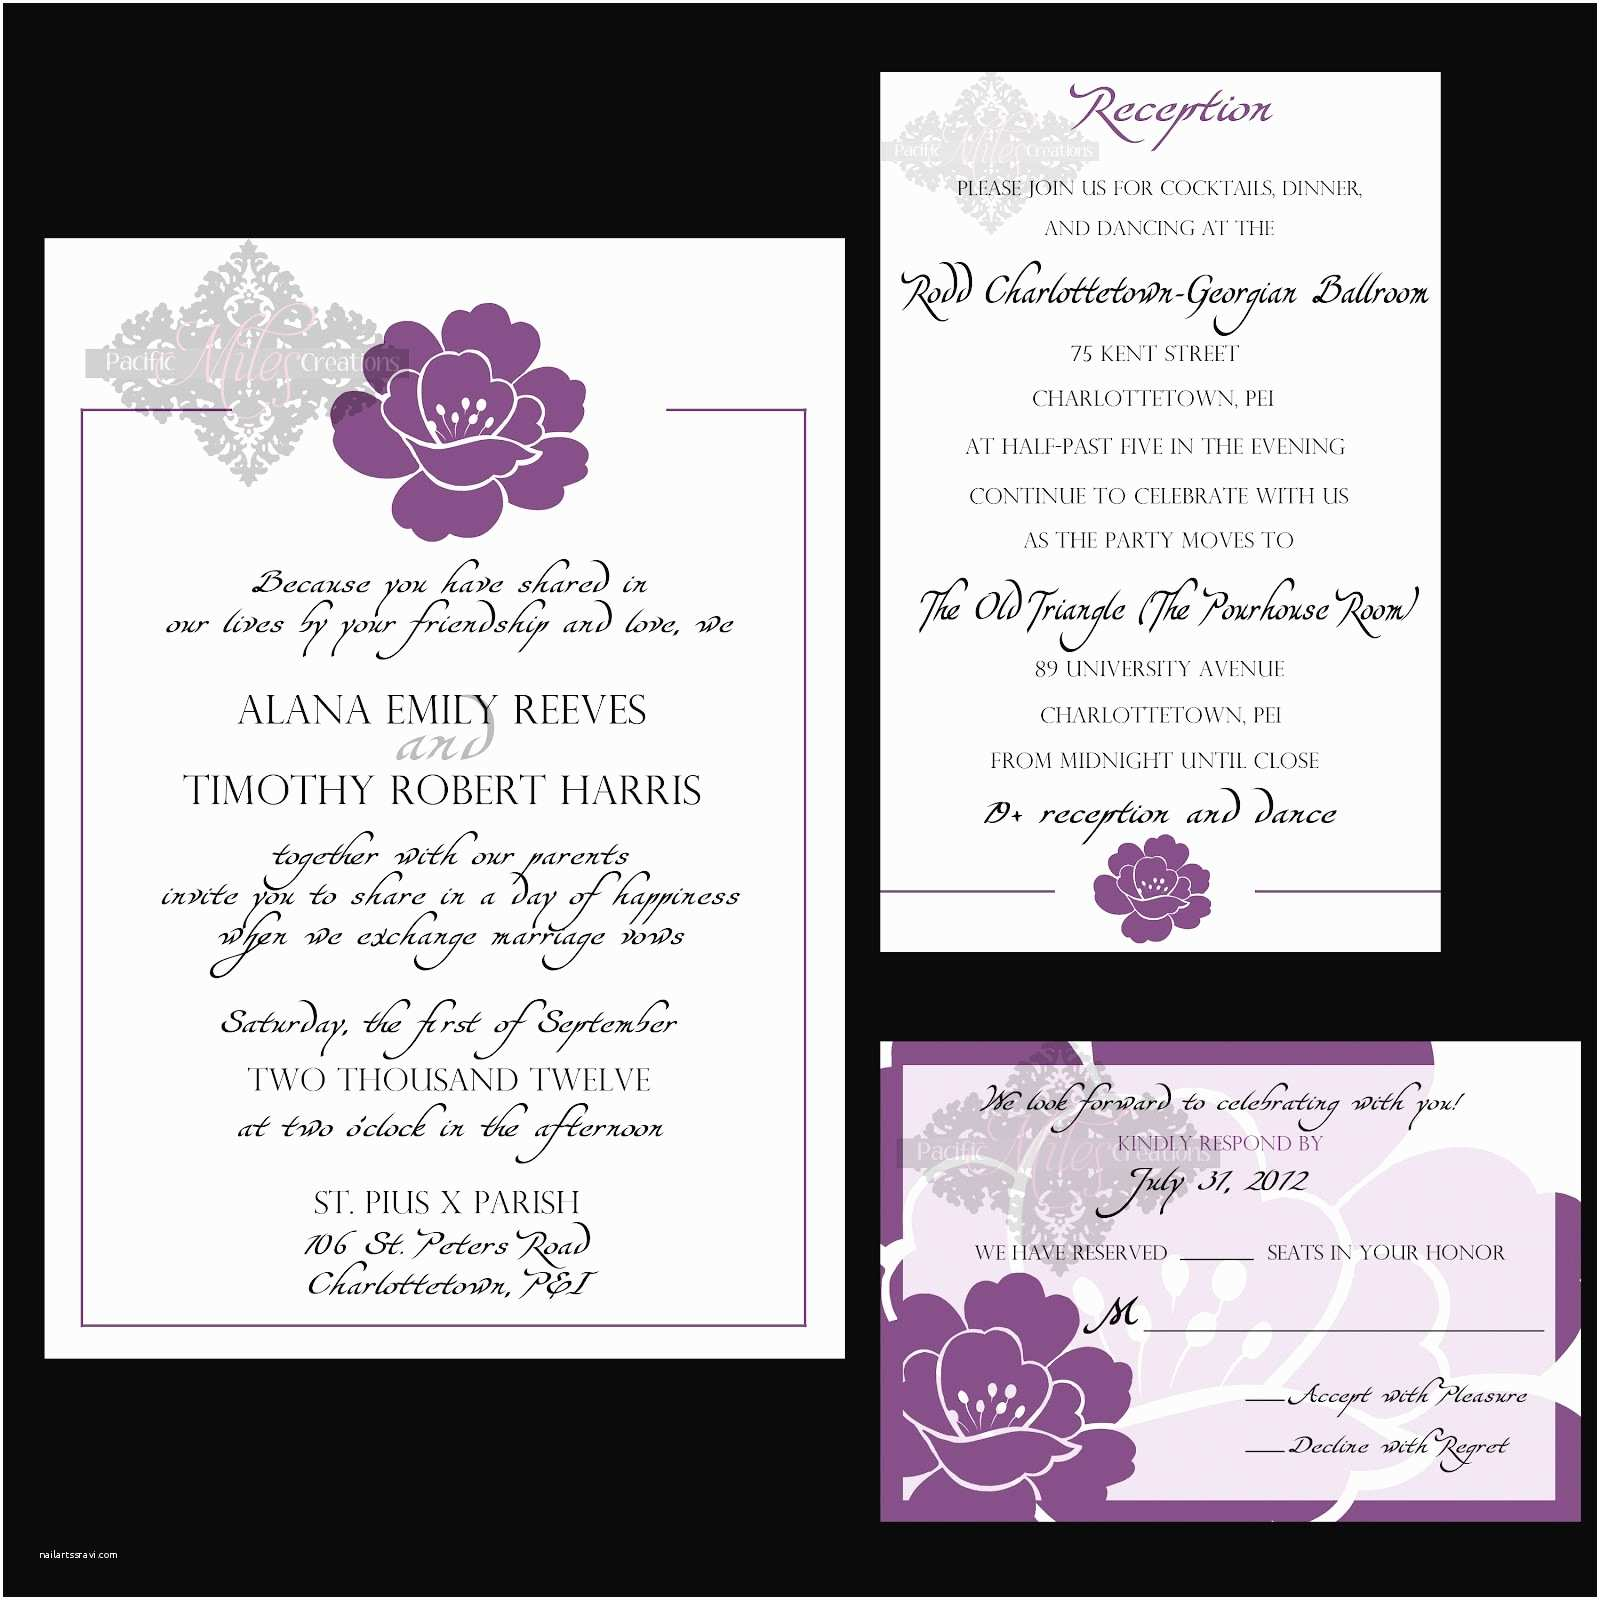 Wedding Invitation Designs Wedding Invitations Templates Wedding Plan Ideas